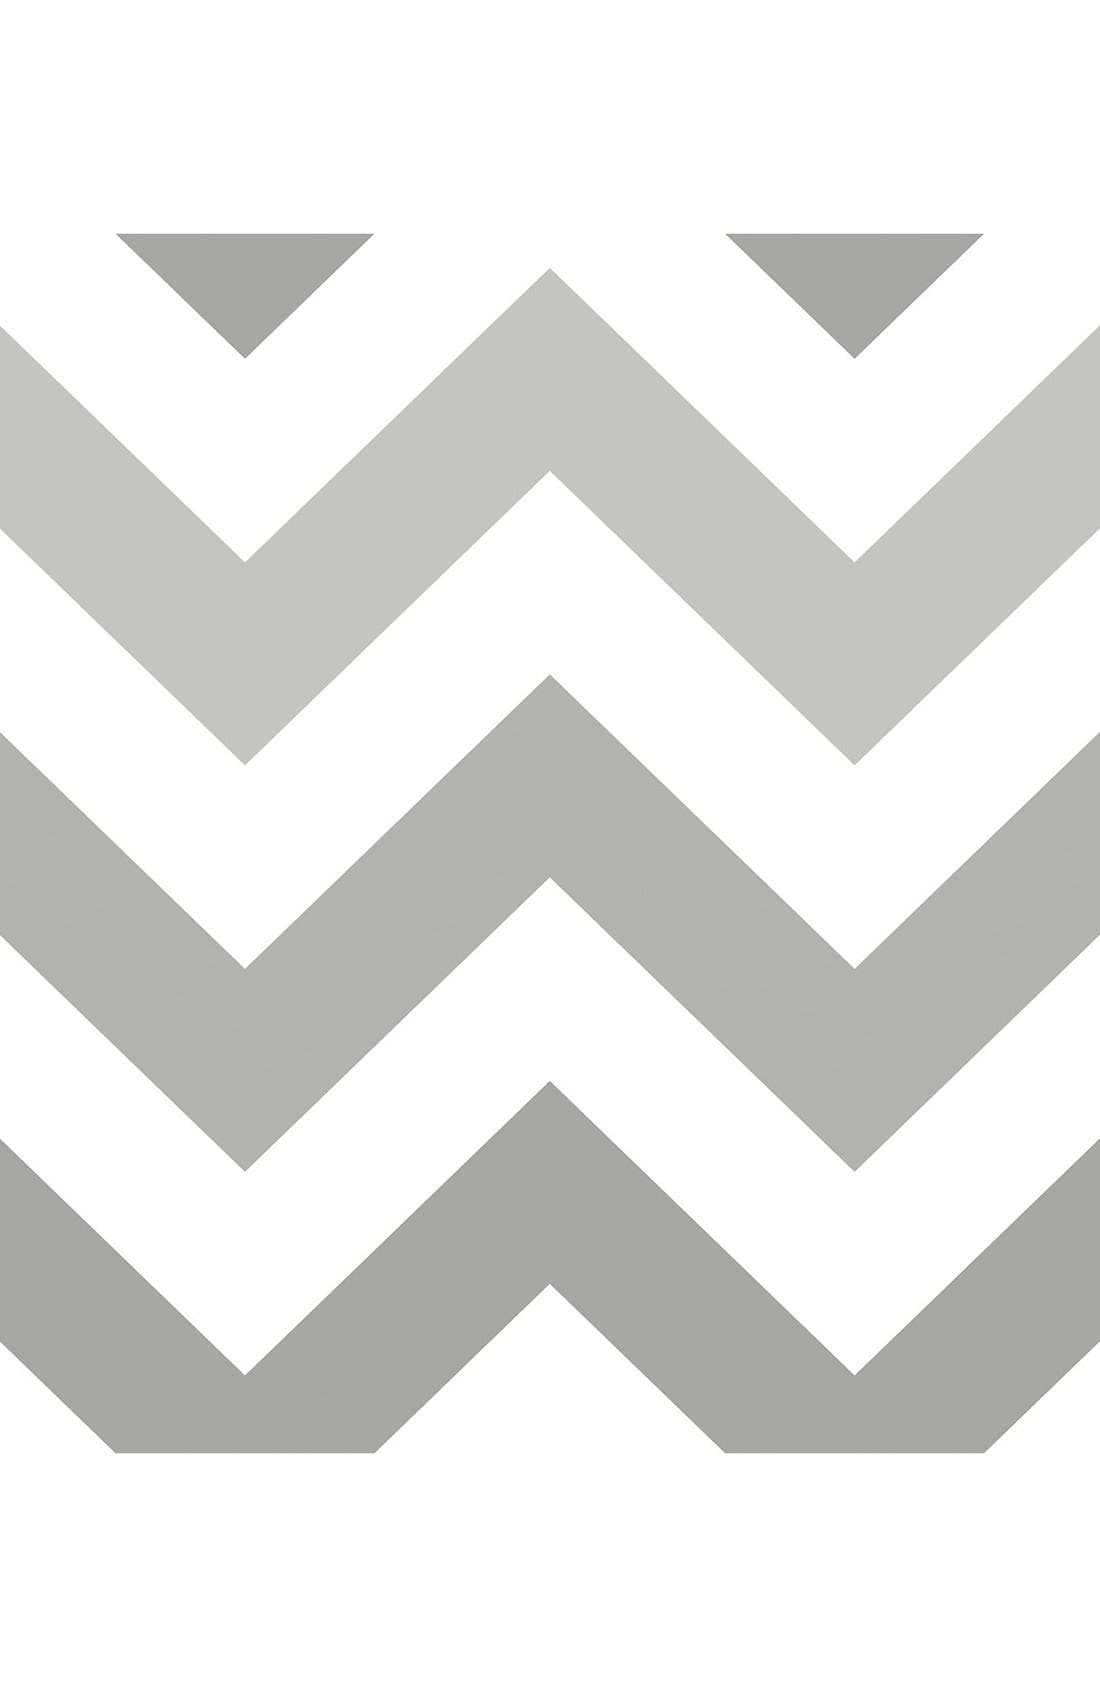 Main Image - Wallpops 'Zig Zag' Reusable Peel & Stick Vinyl Wallpaper